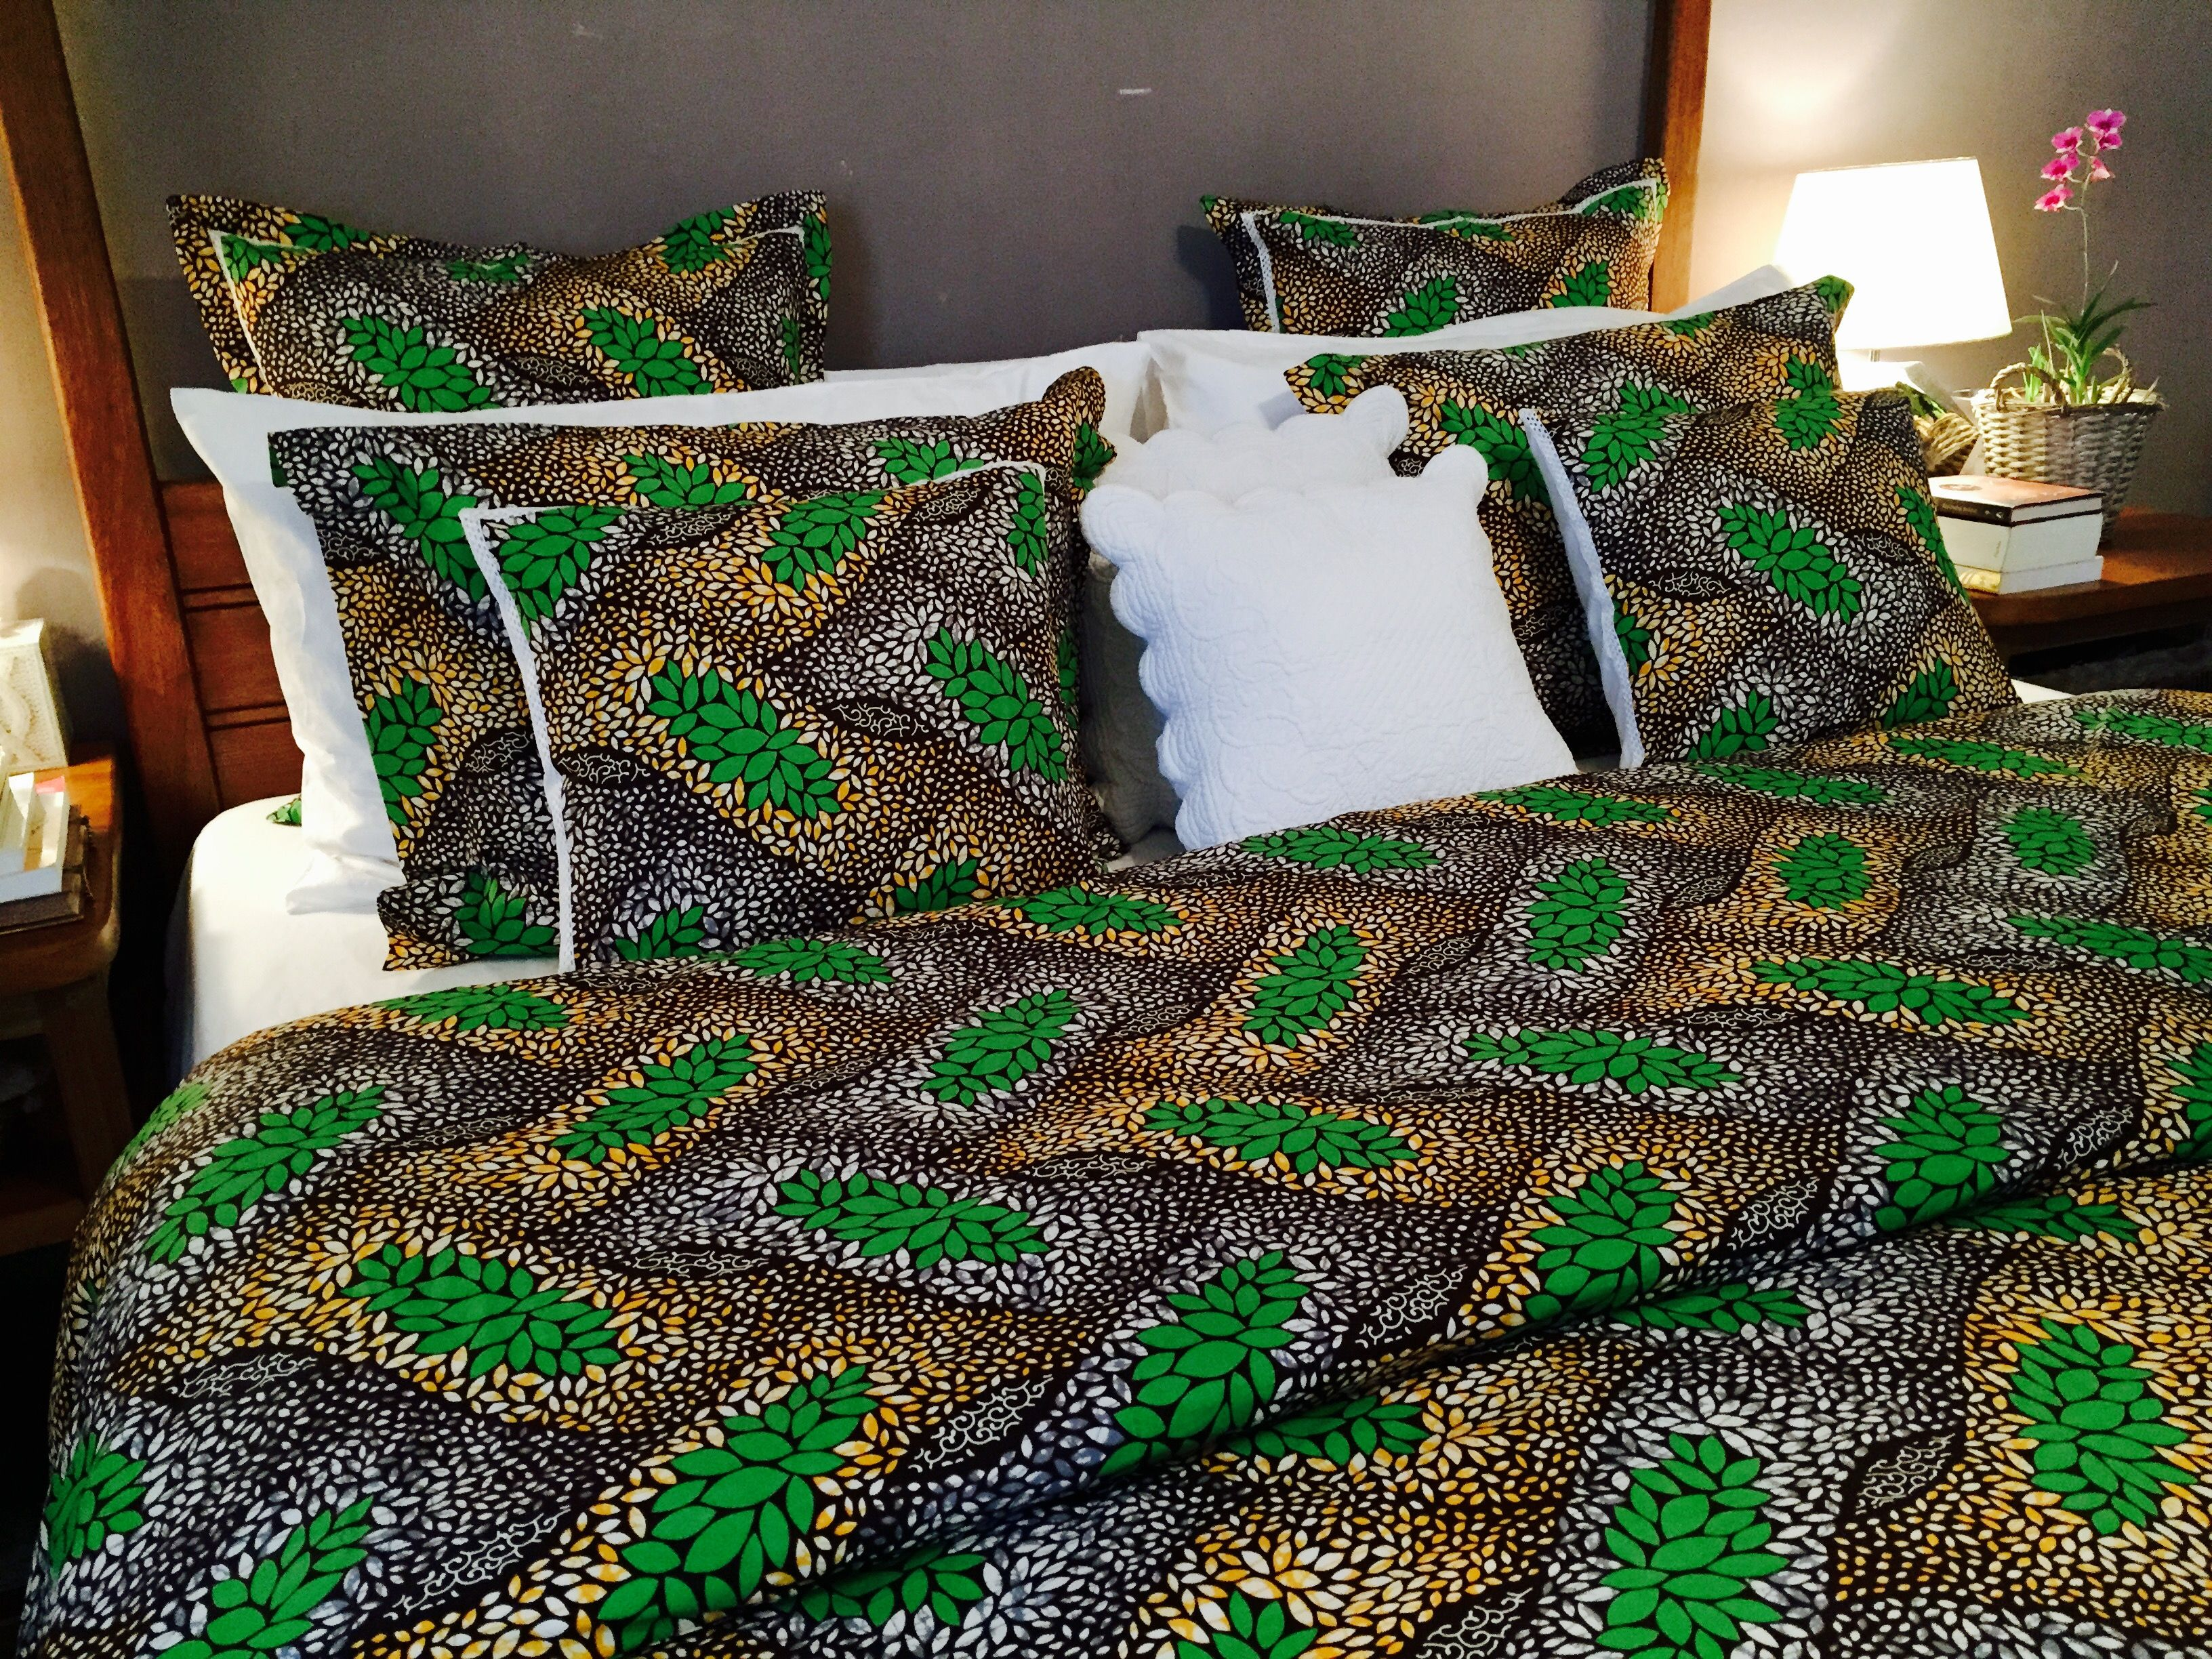 African Print Used For Bed Cover Set Wax Bedcover Idee